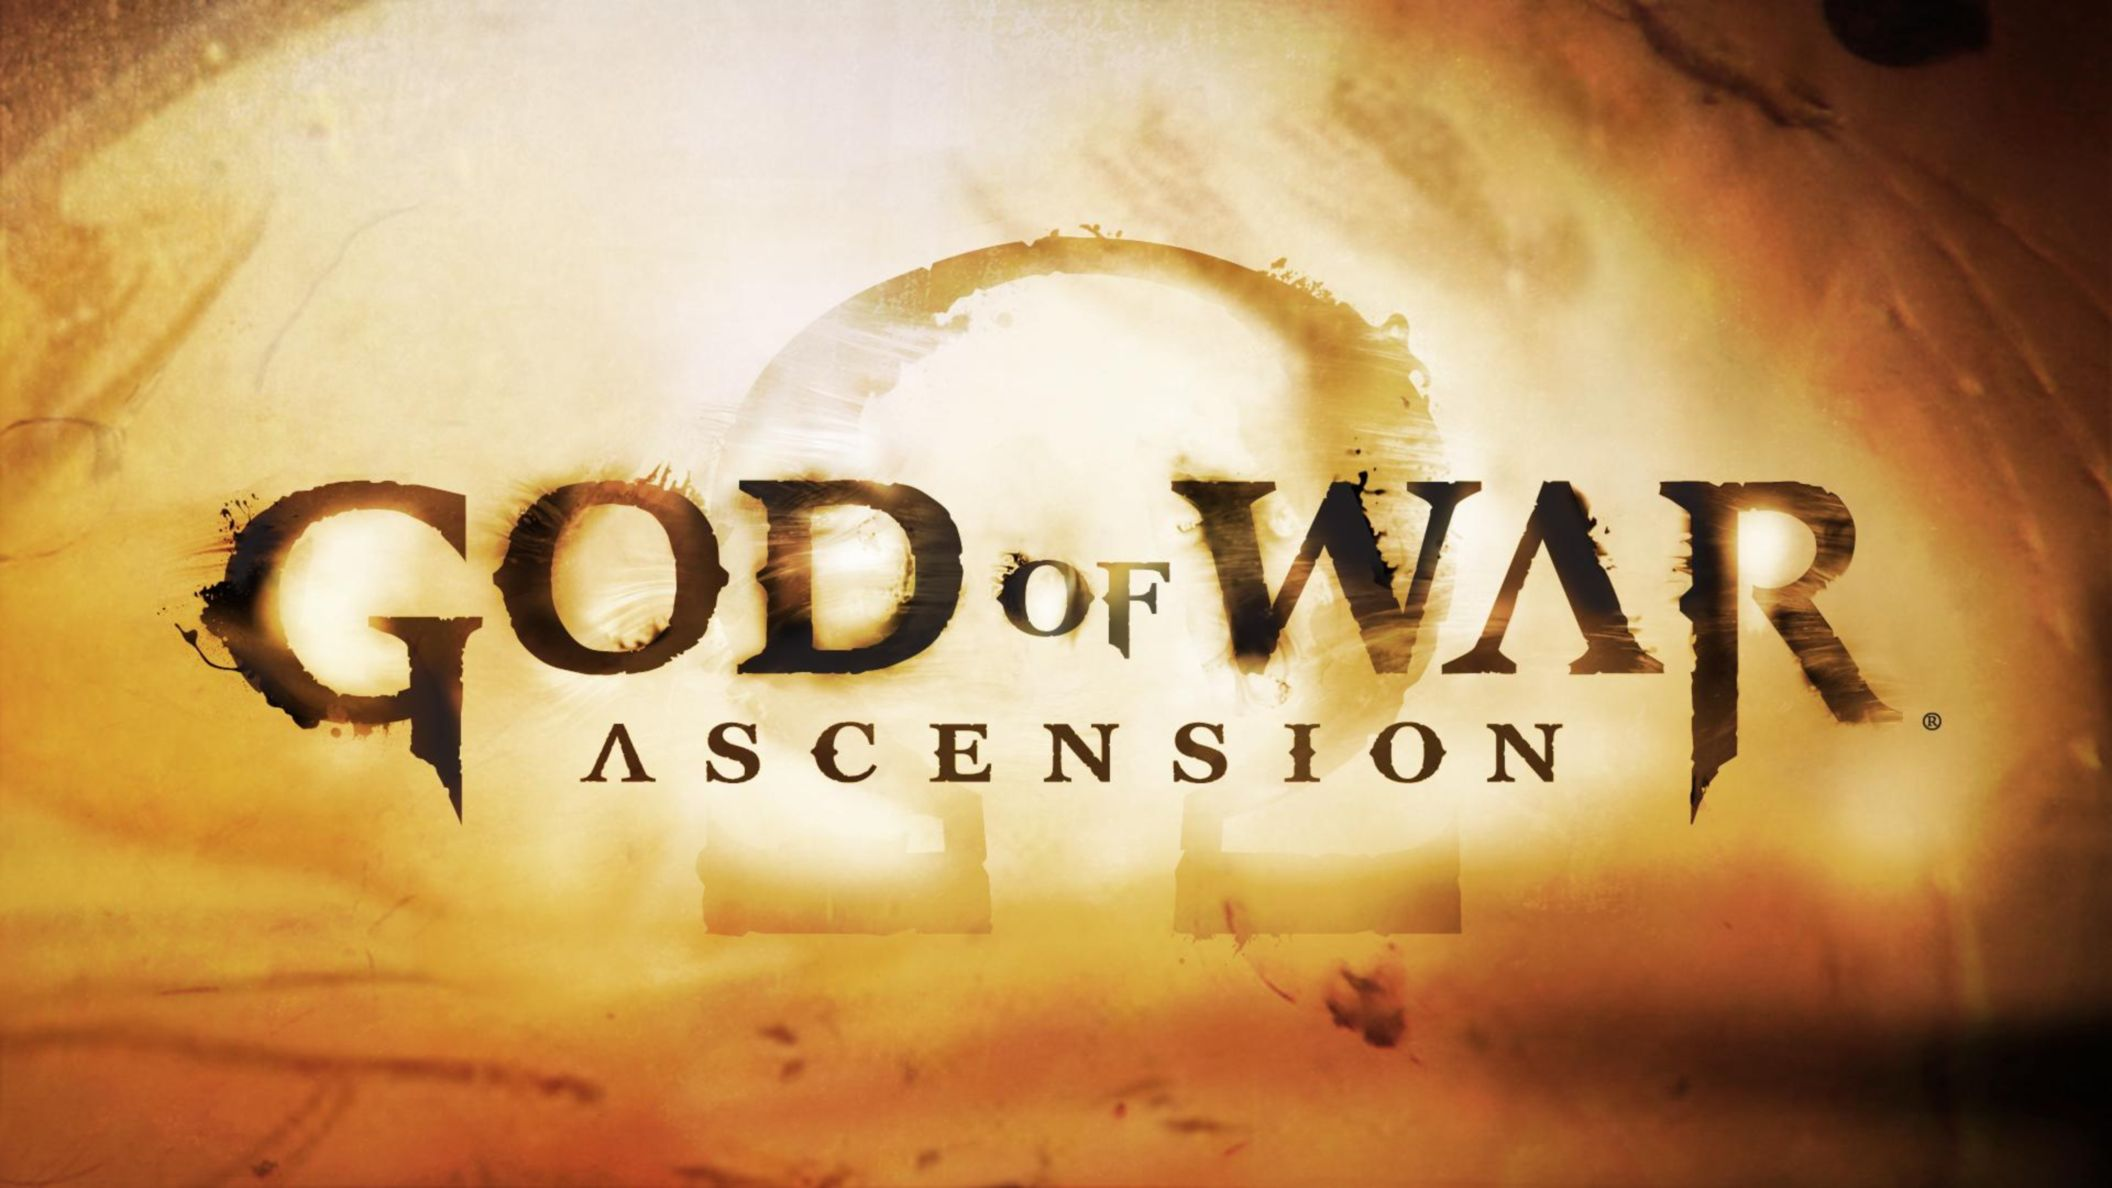 Download free HD God of War Ascension HD Wallpaper, image